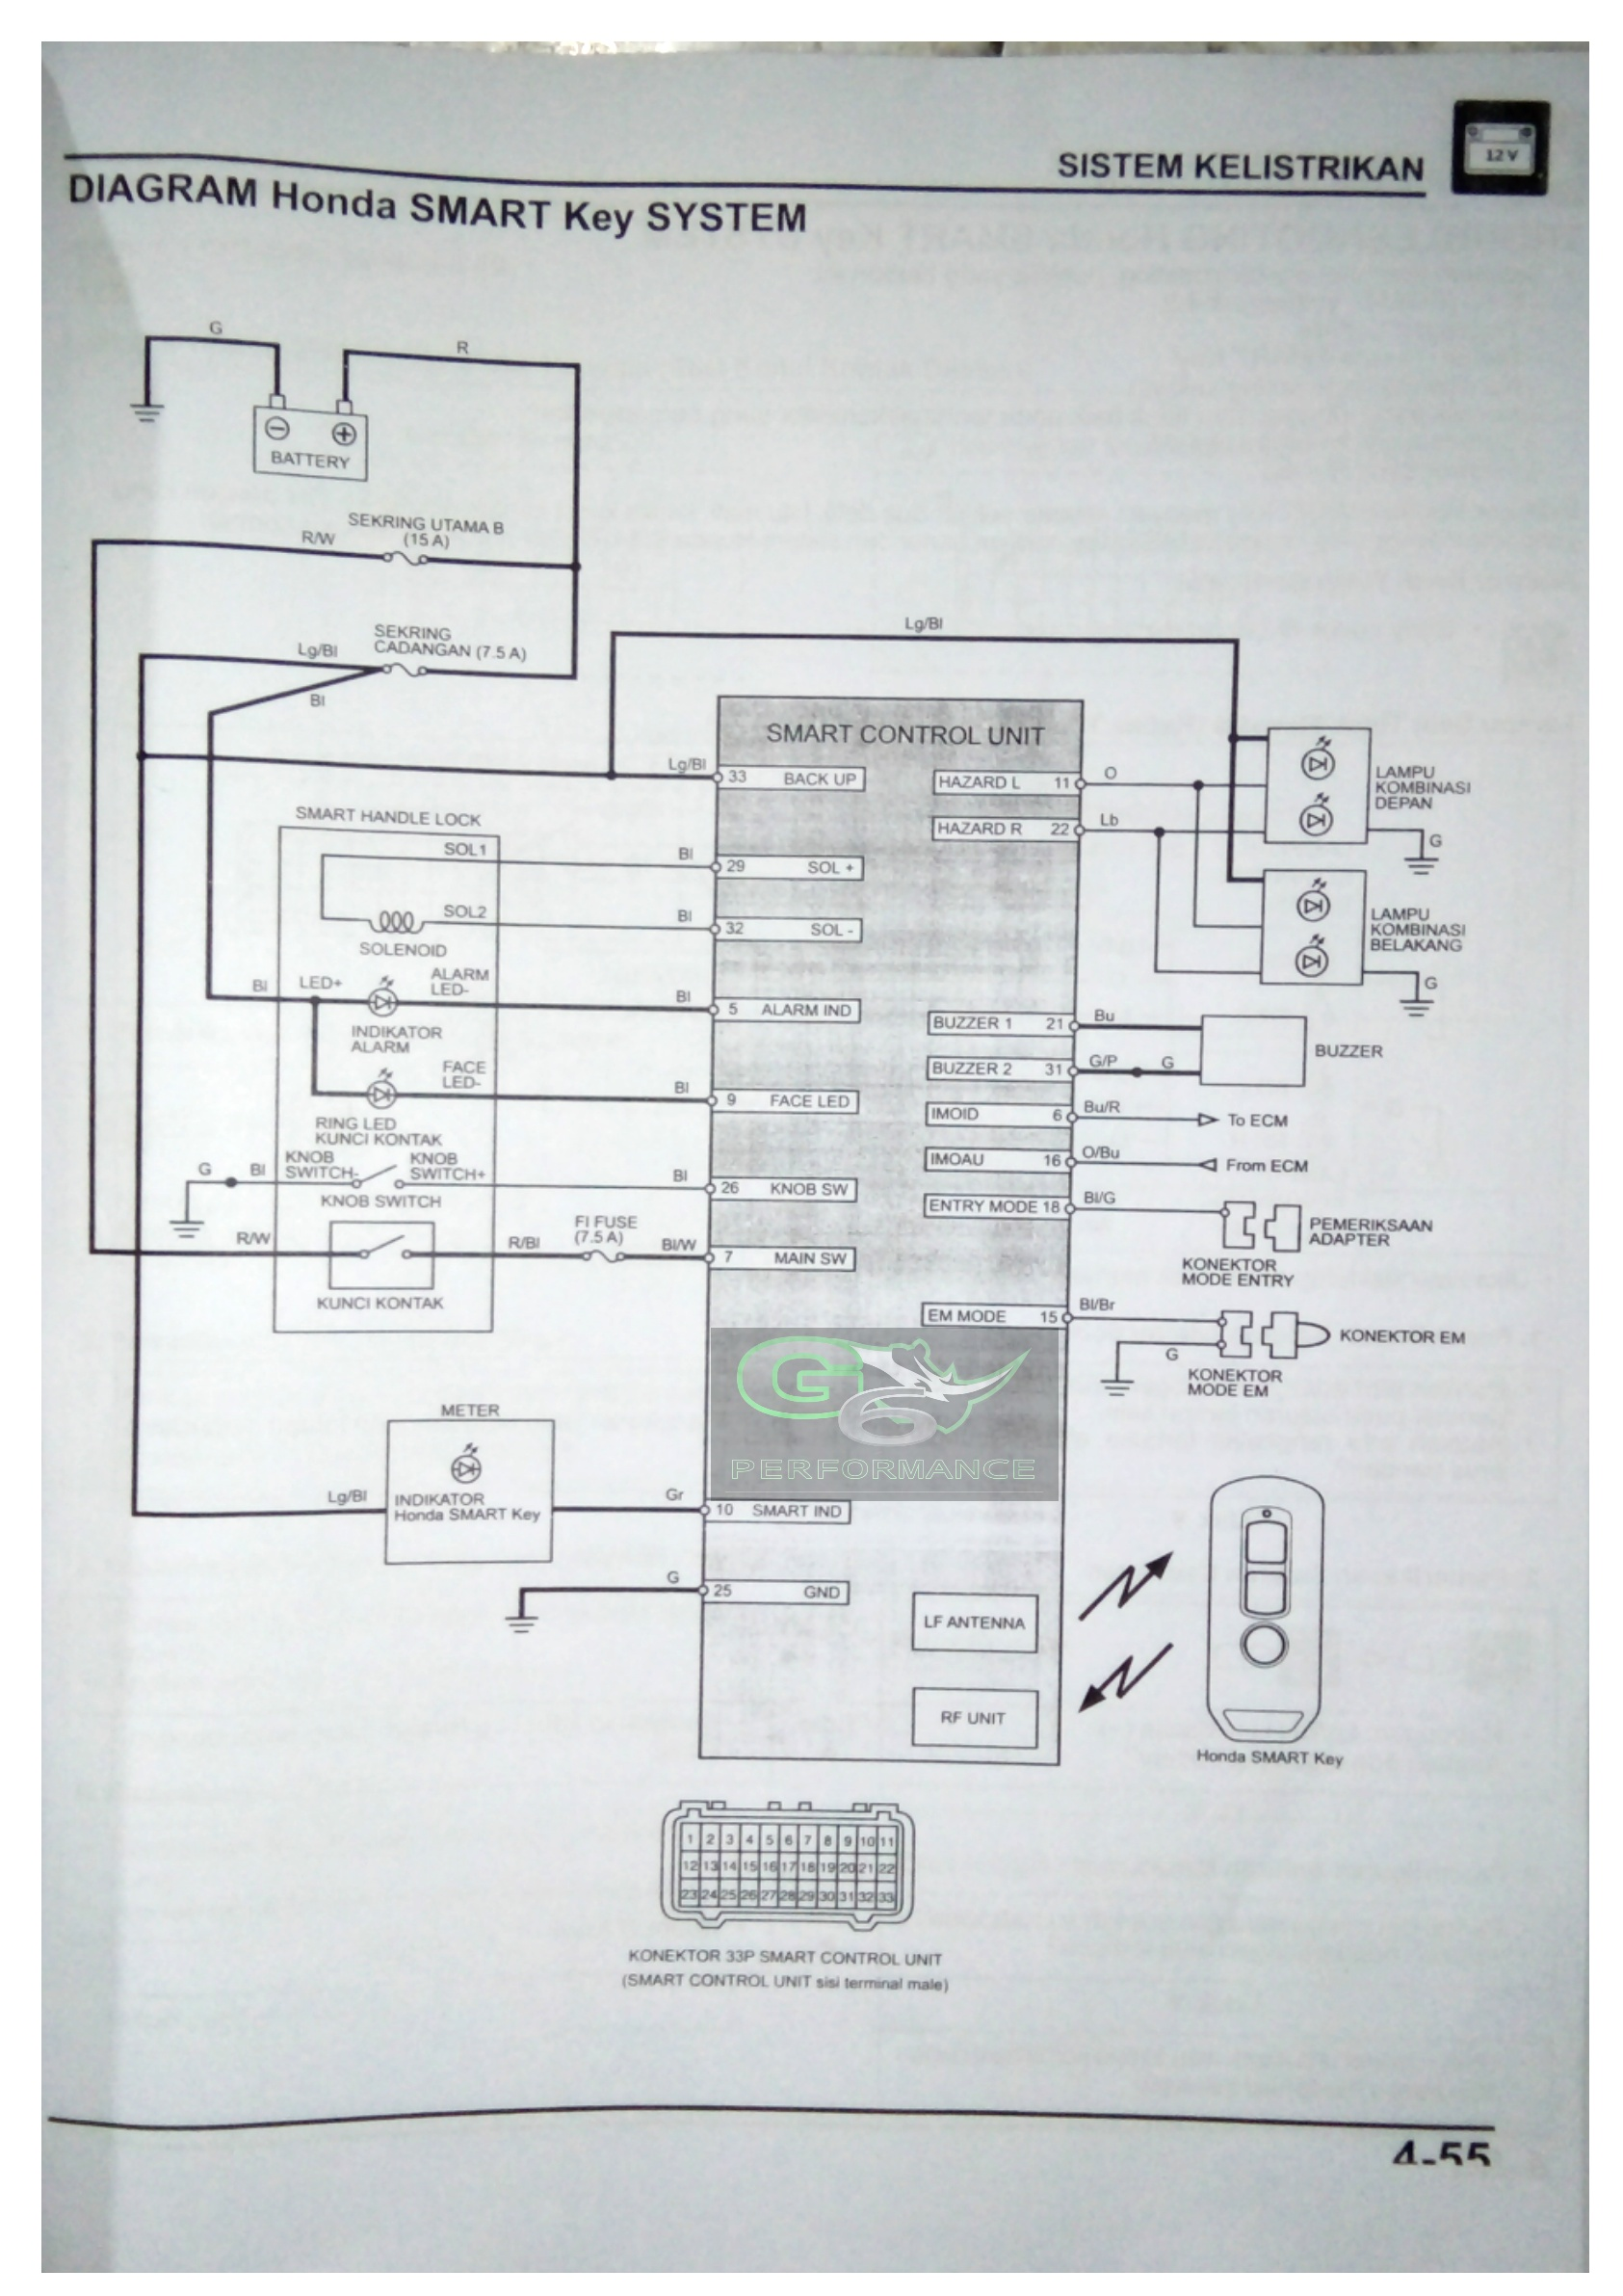 medium resolution of electric wiring system diagram honda new pcx 150 2018 gisix s blog wiring diagram honda pcx